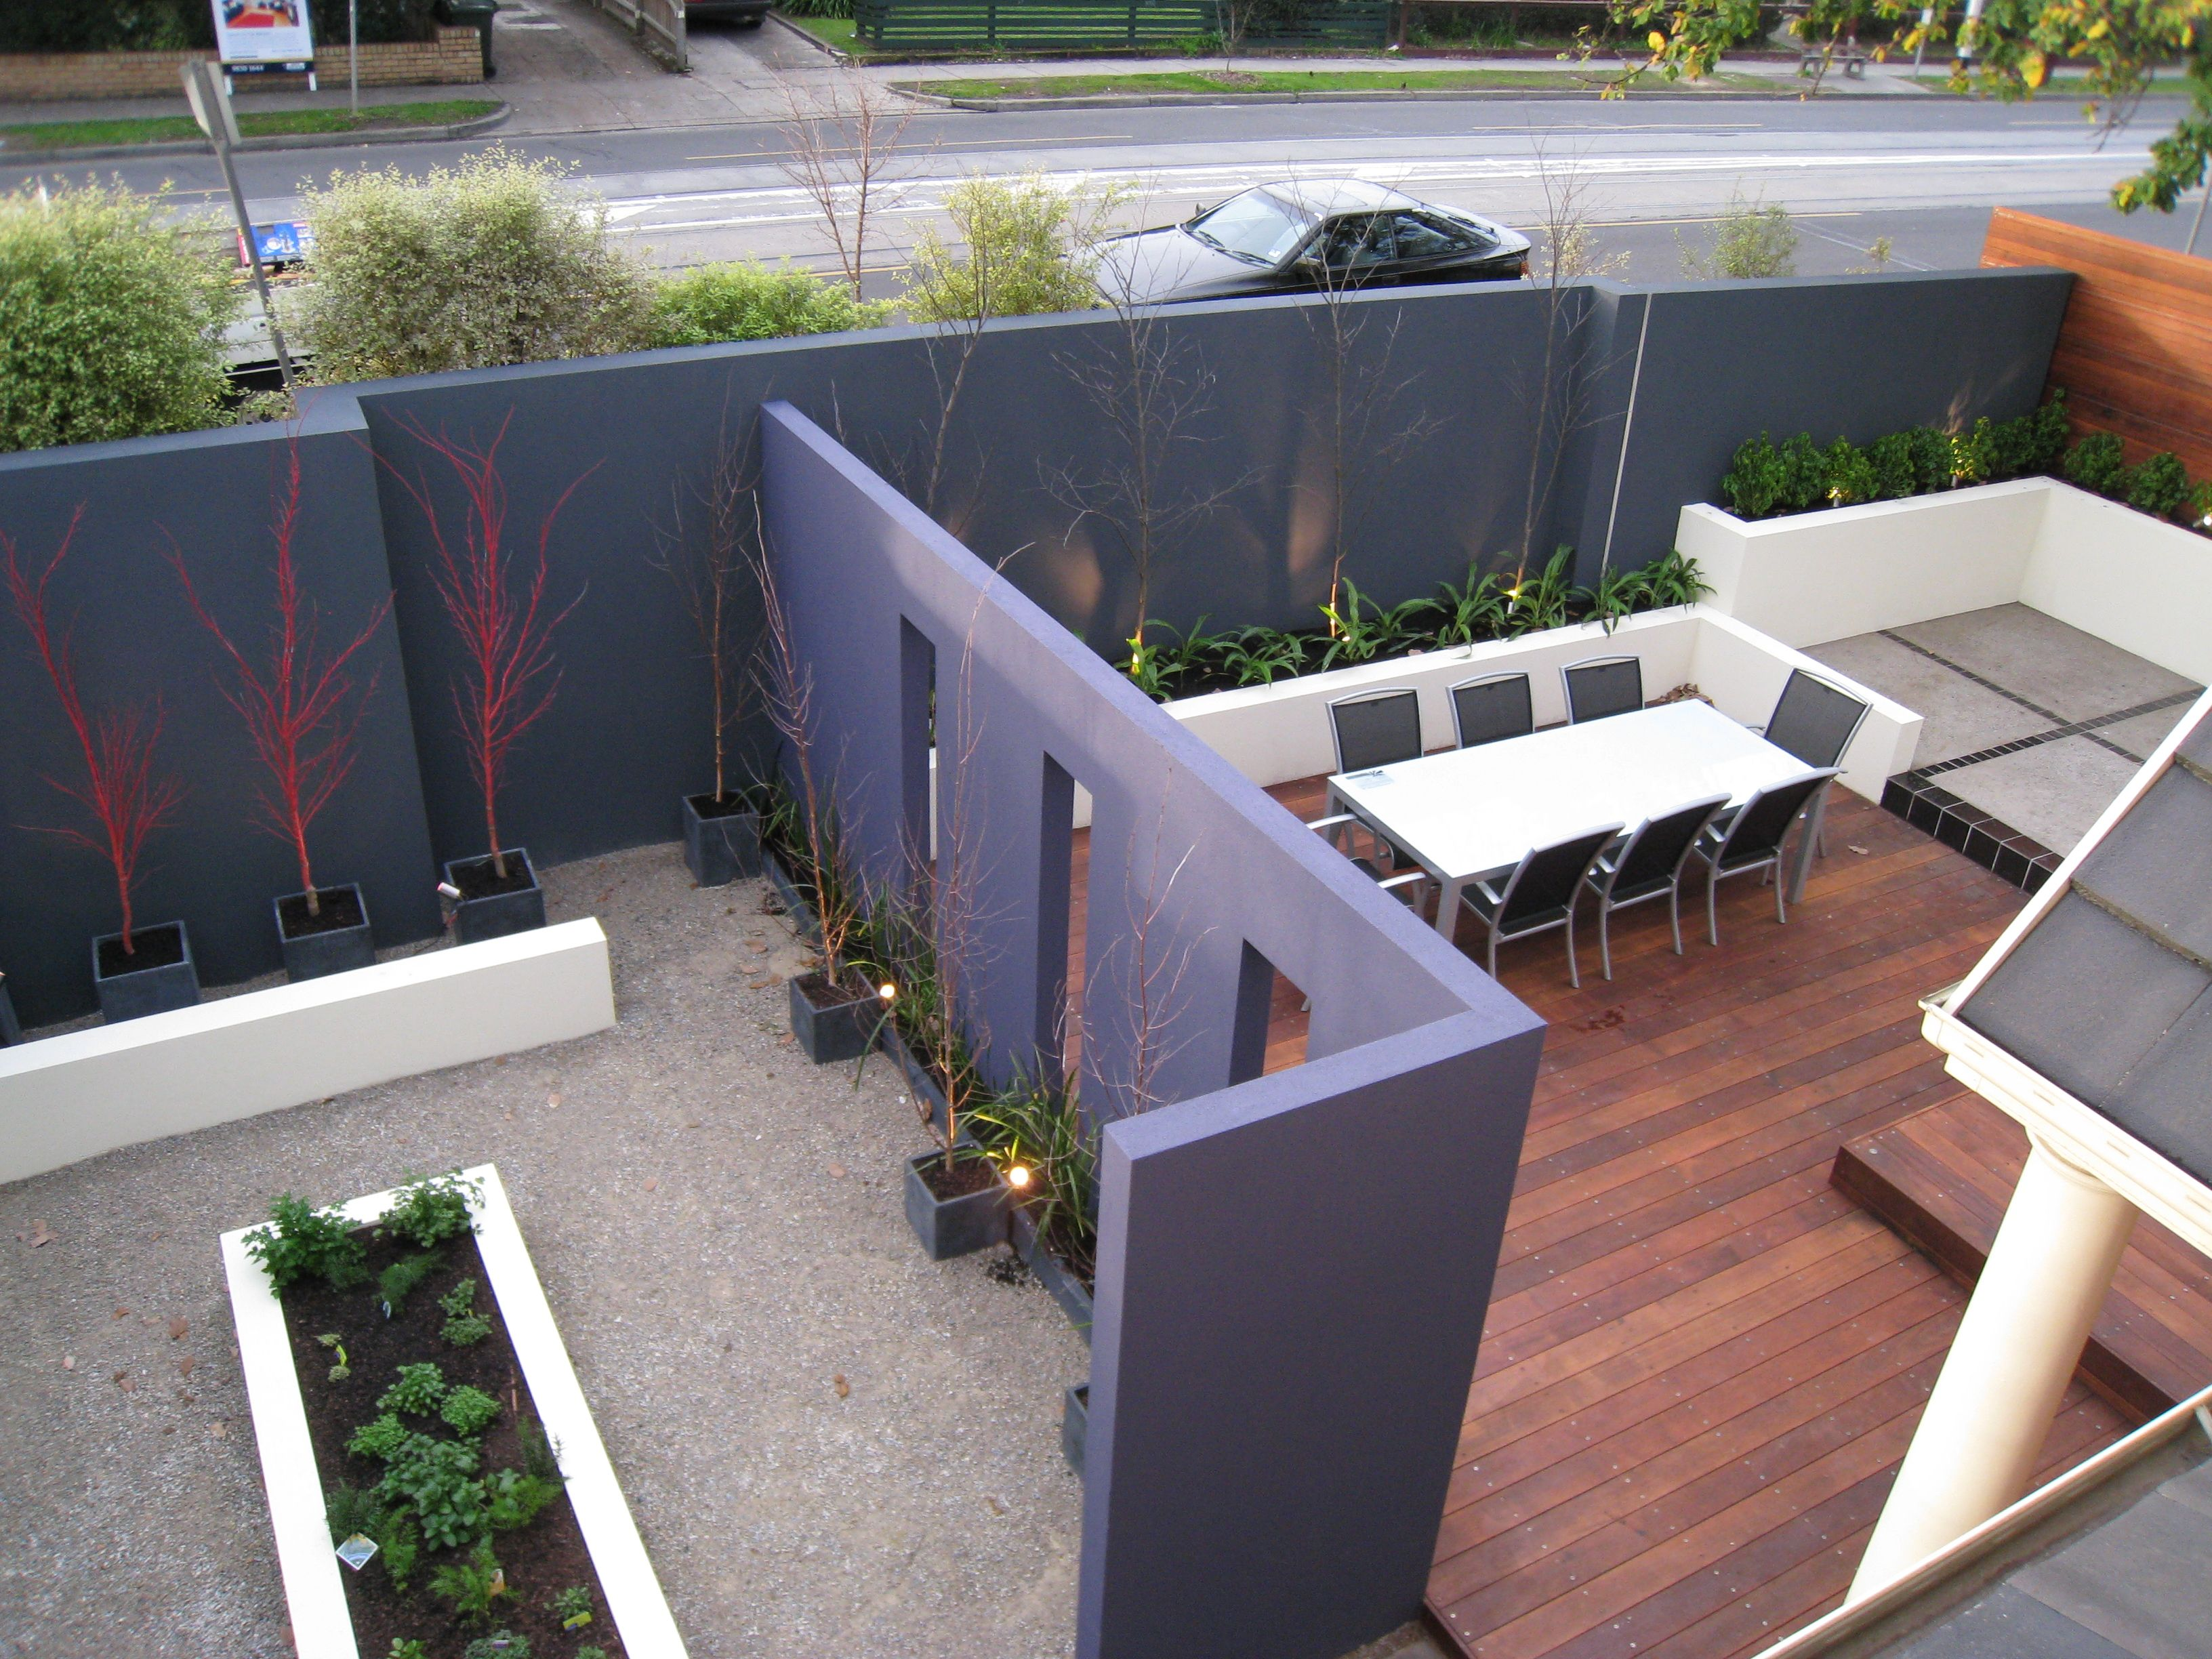 Jack merlo design more outdoor garden ideas landscape design gardening - Landscape Designs